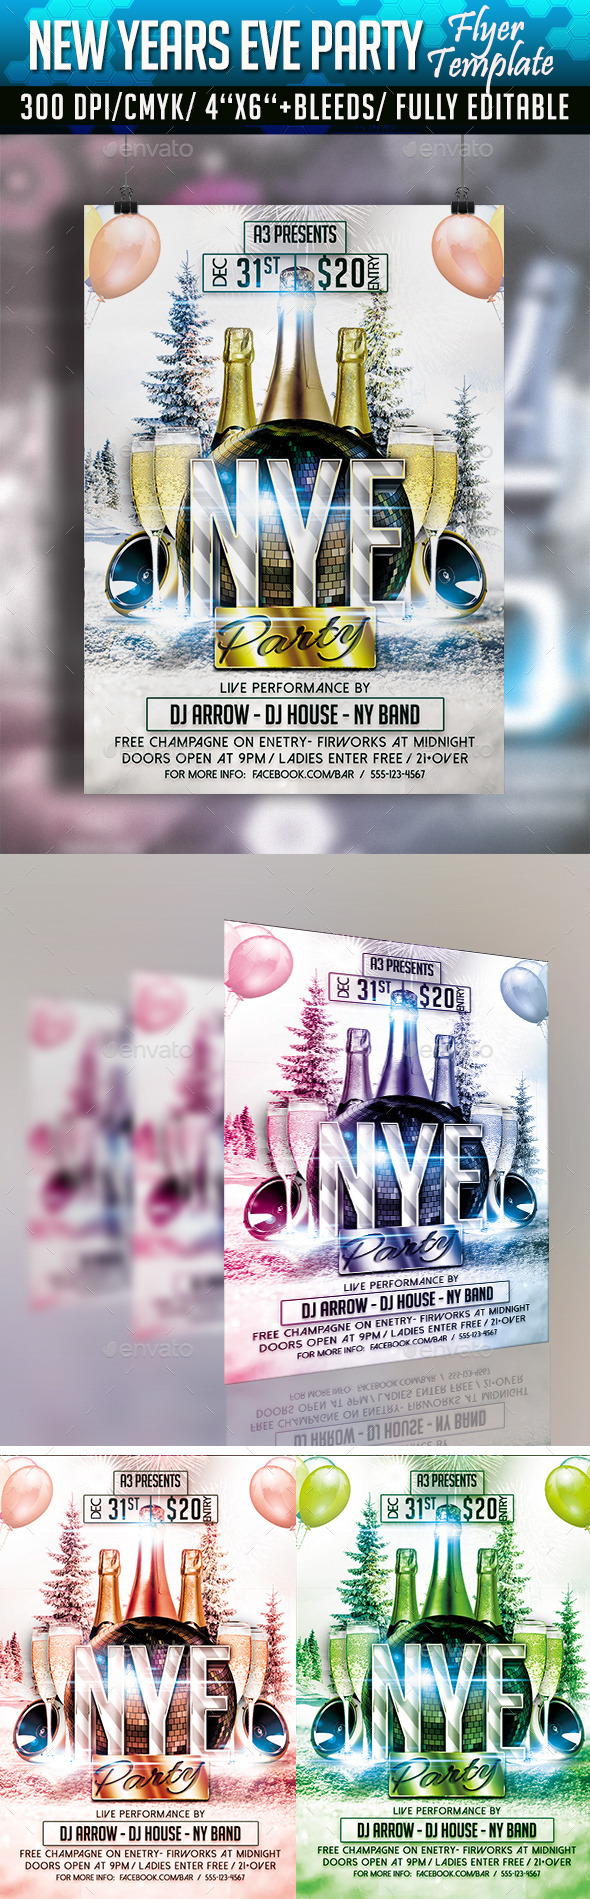 New Year's Eve Party Flyer Template - Clubs & Parties Events